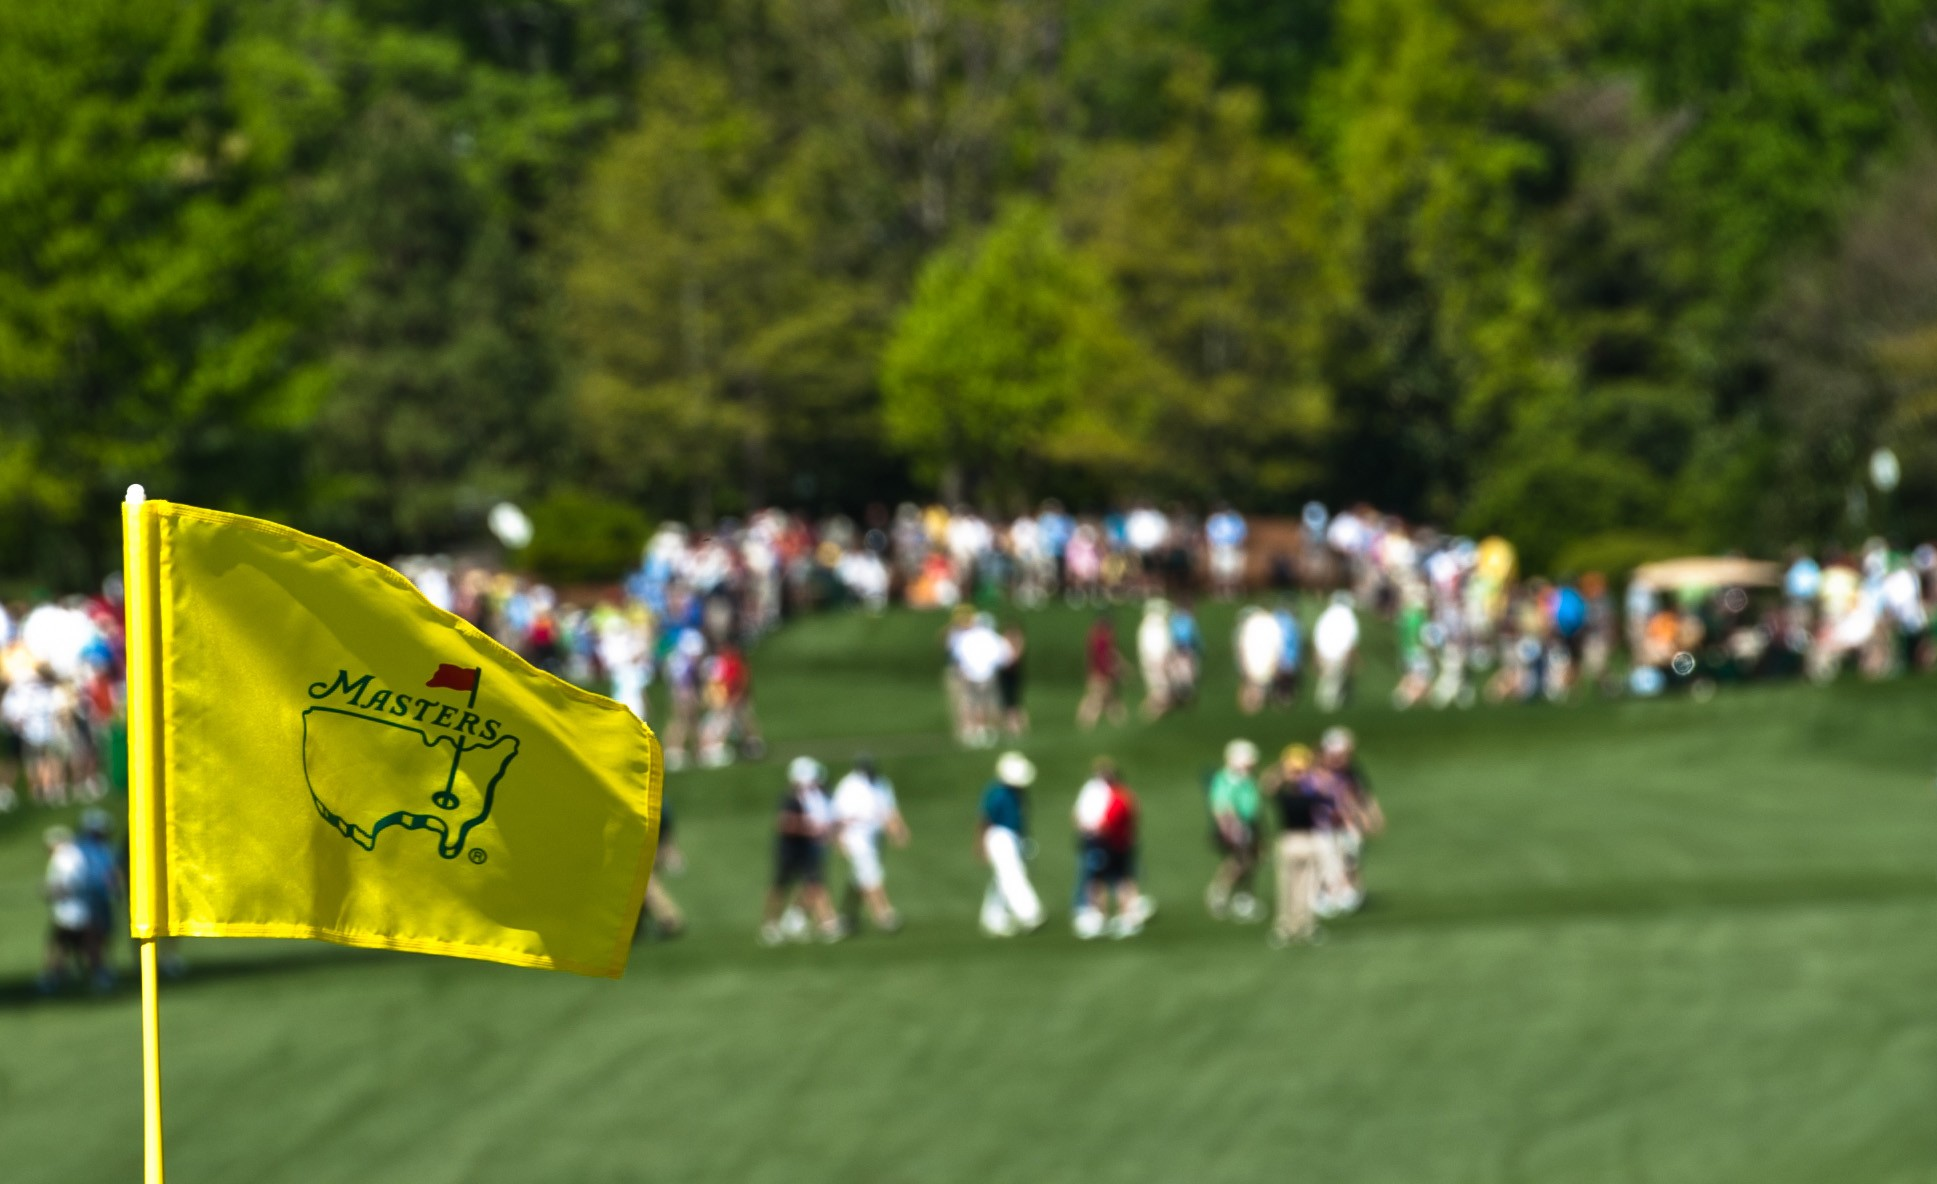 Headed to Augusta? Top things you need to know to plan a trip to the Masters